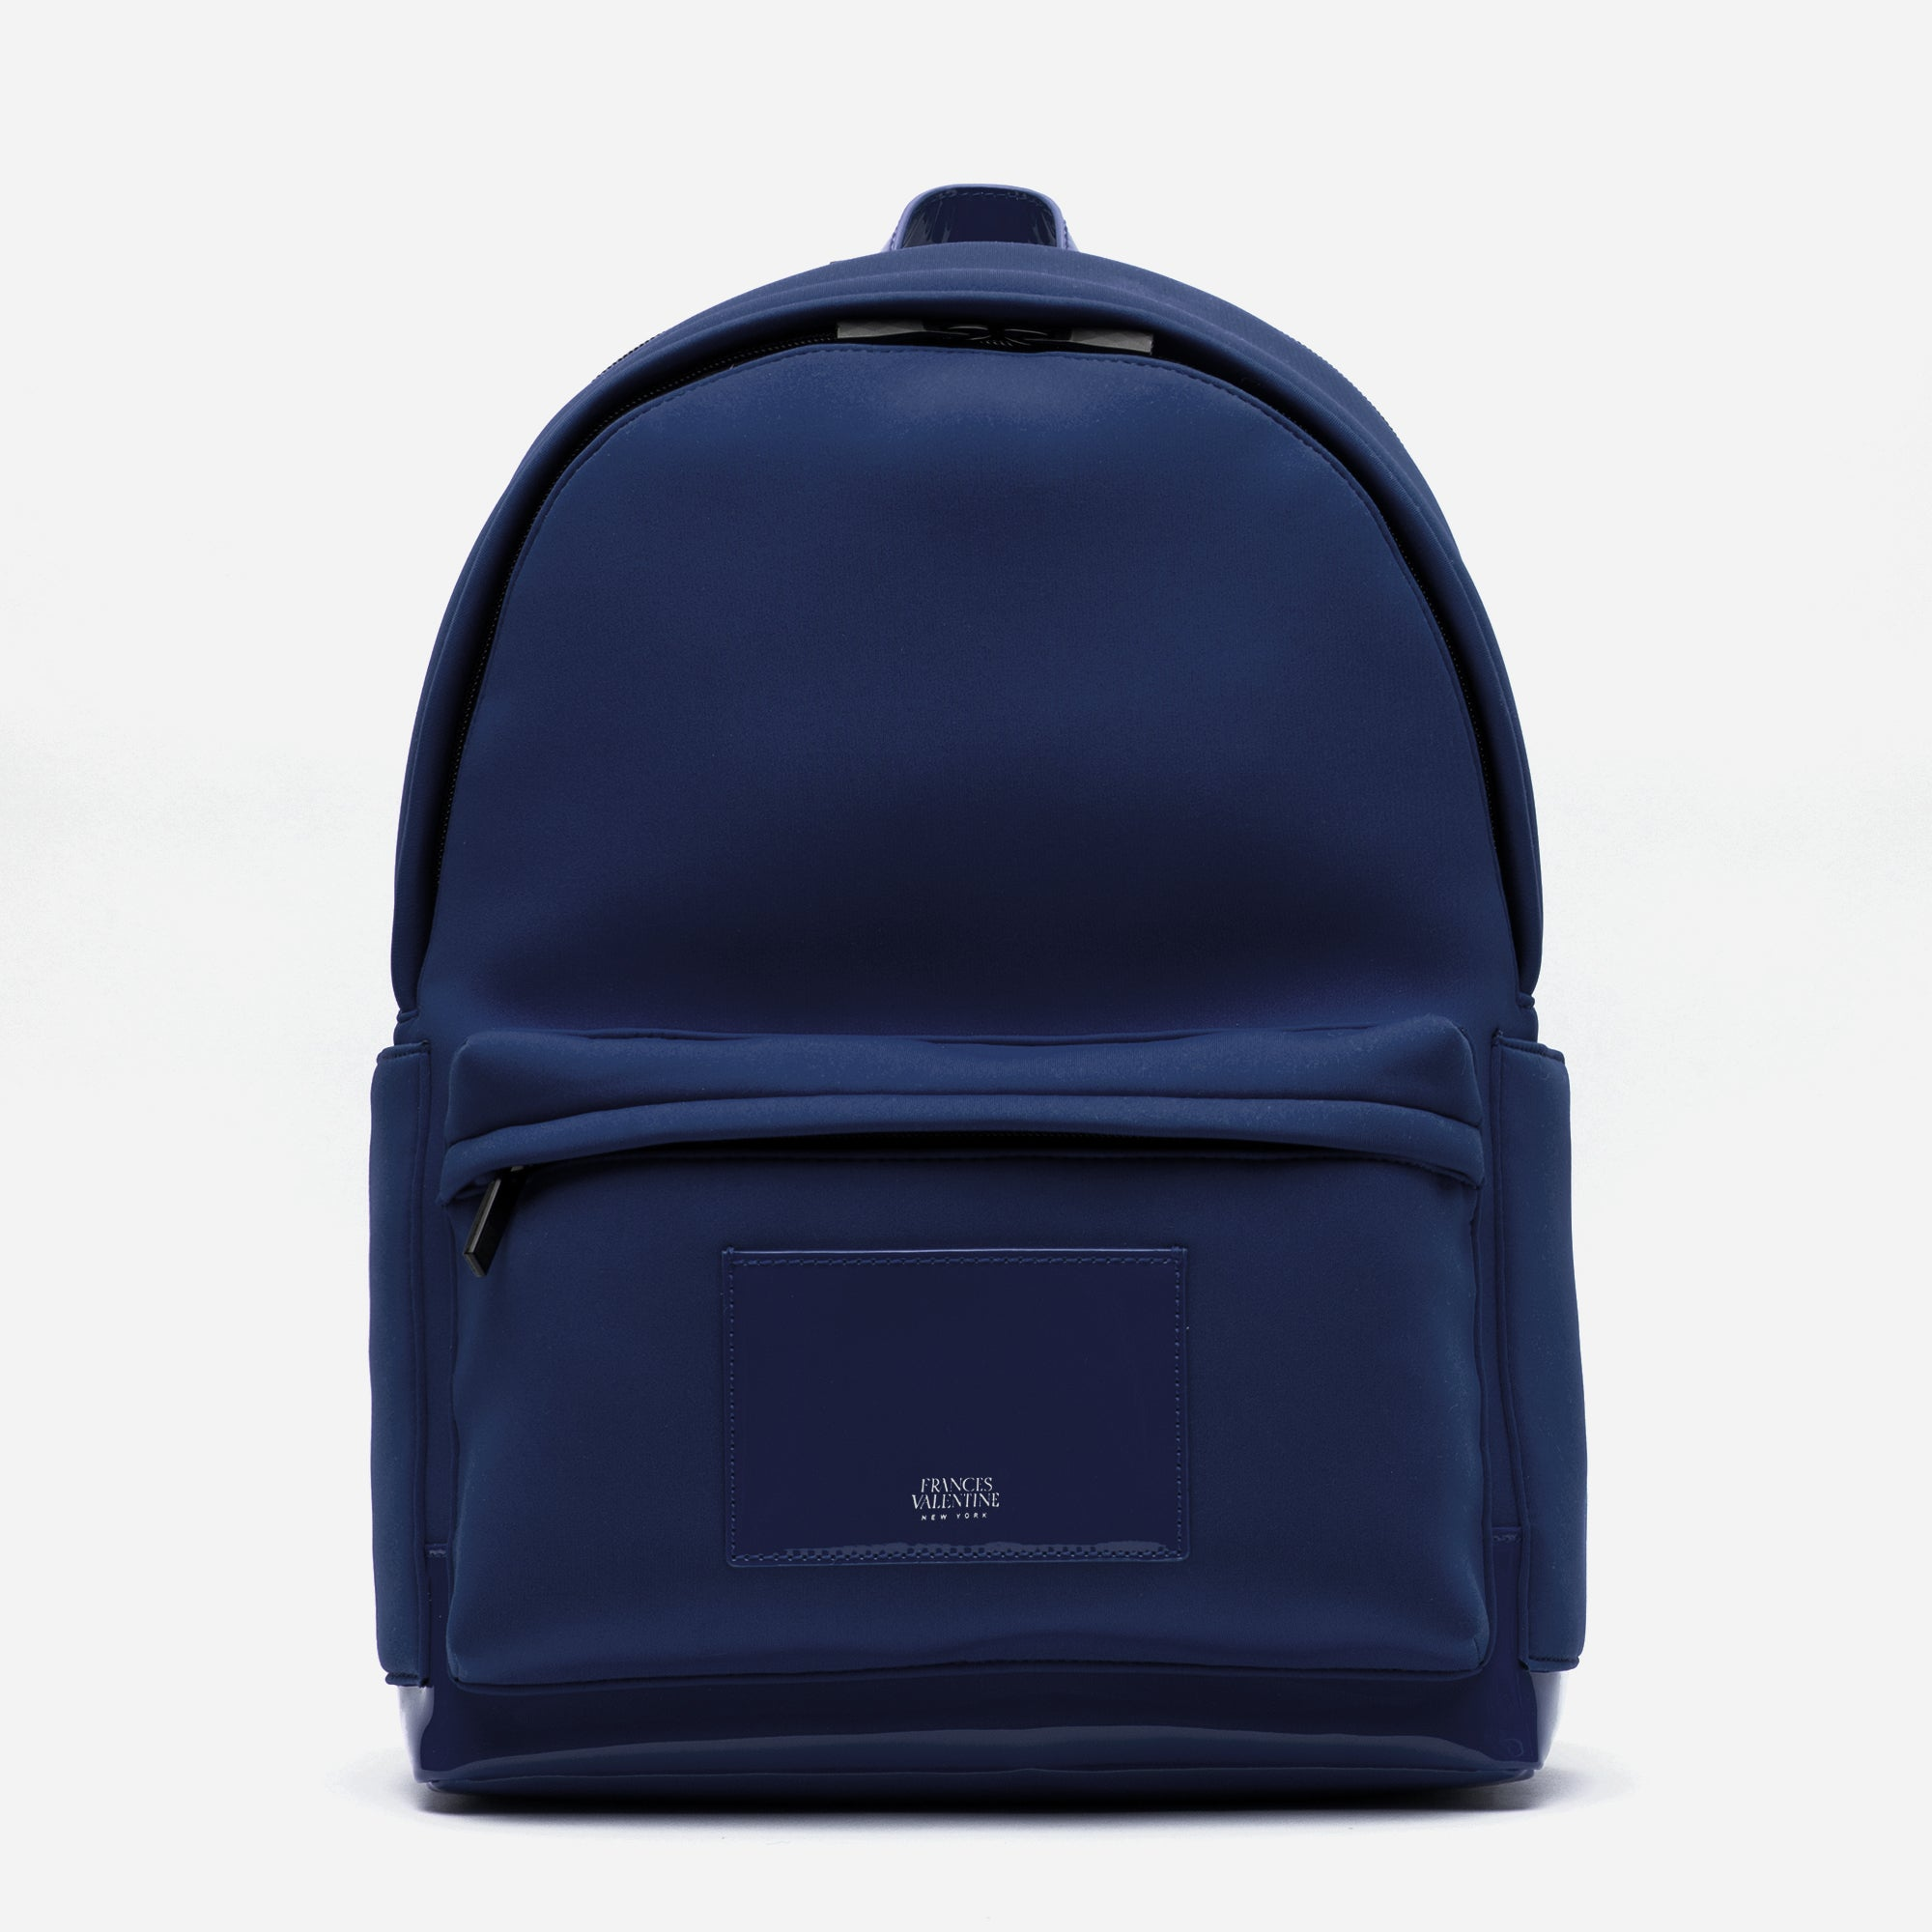 Neoprene Backpack Navy - Frances Valentine